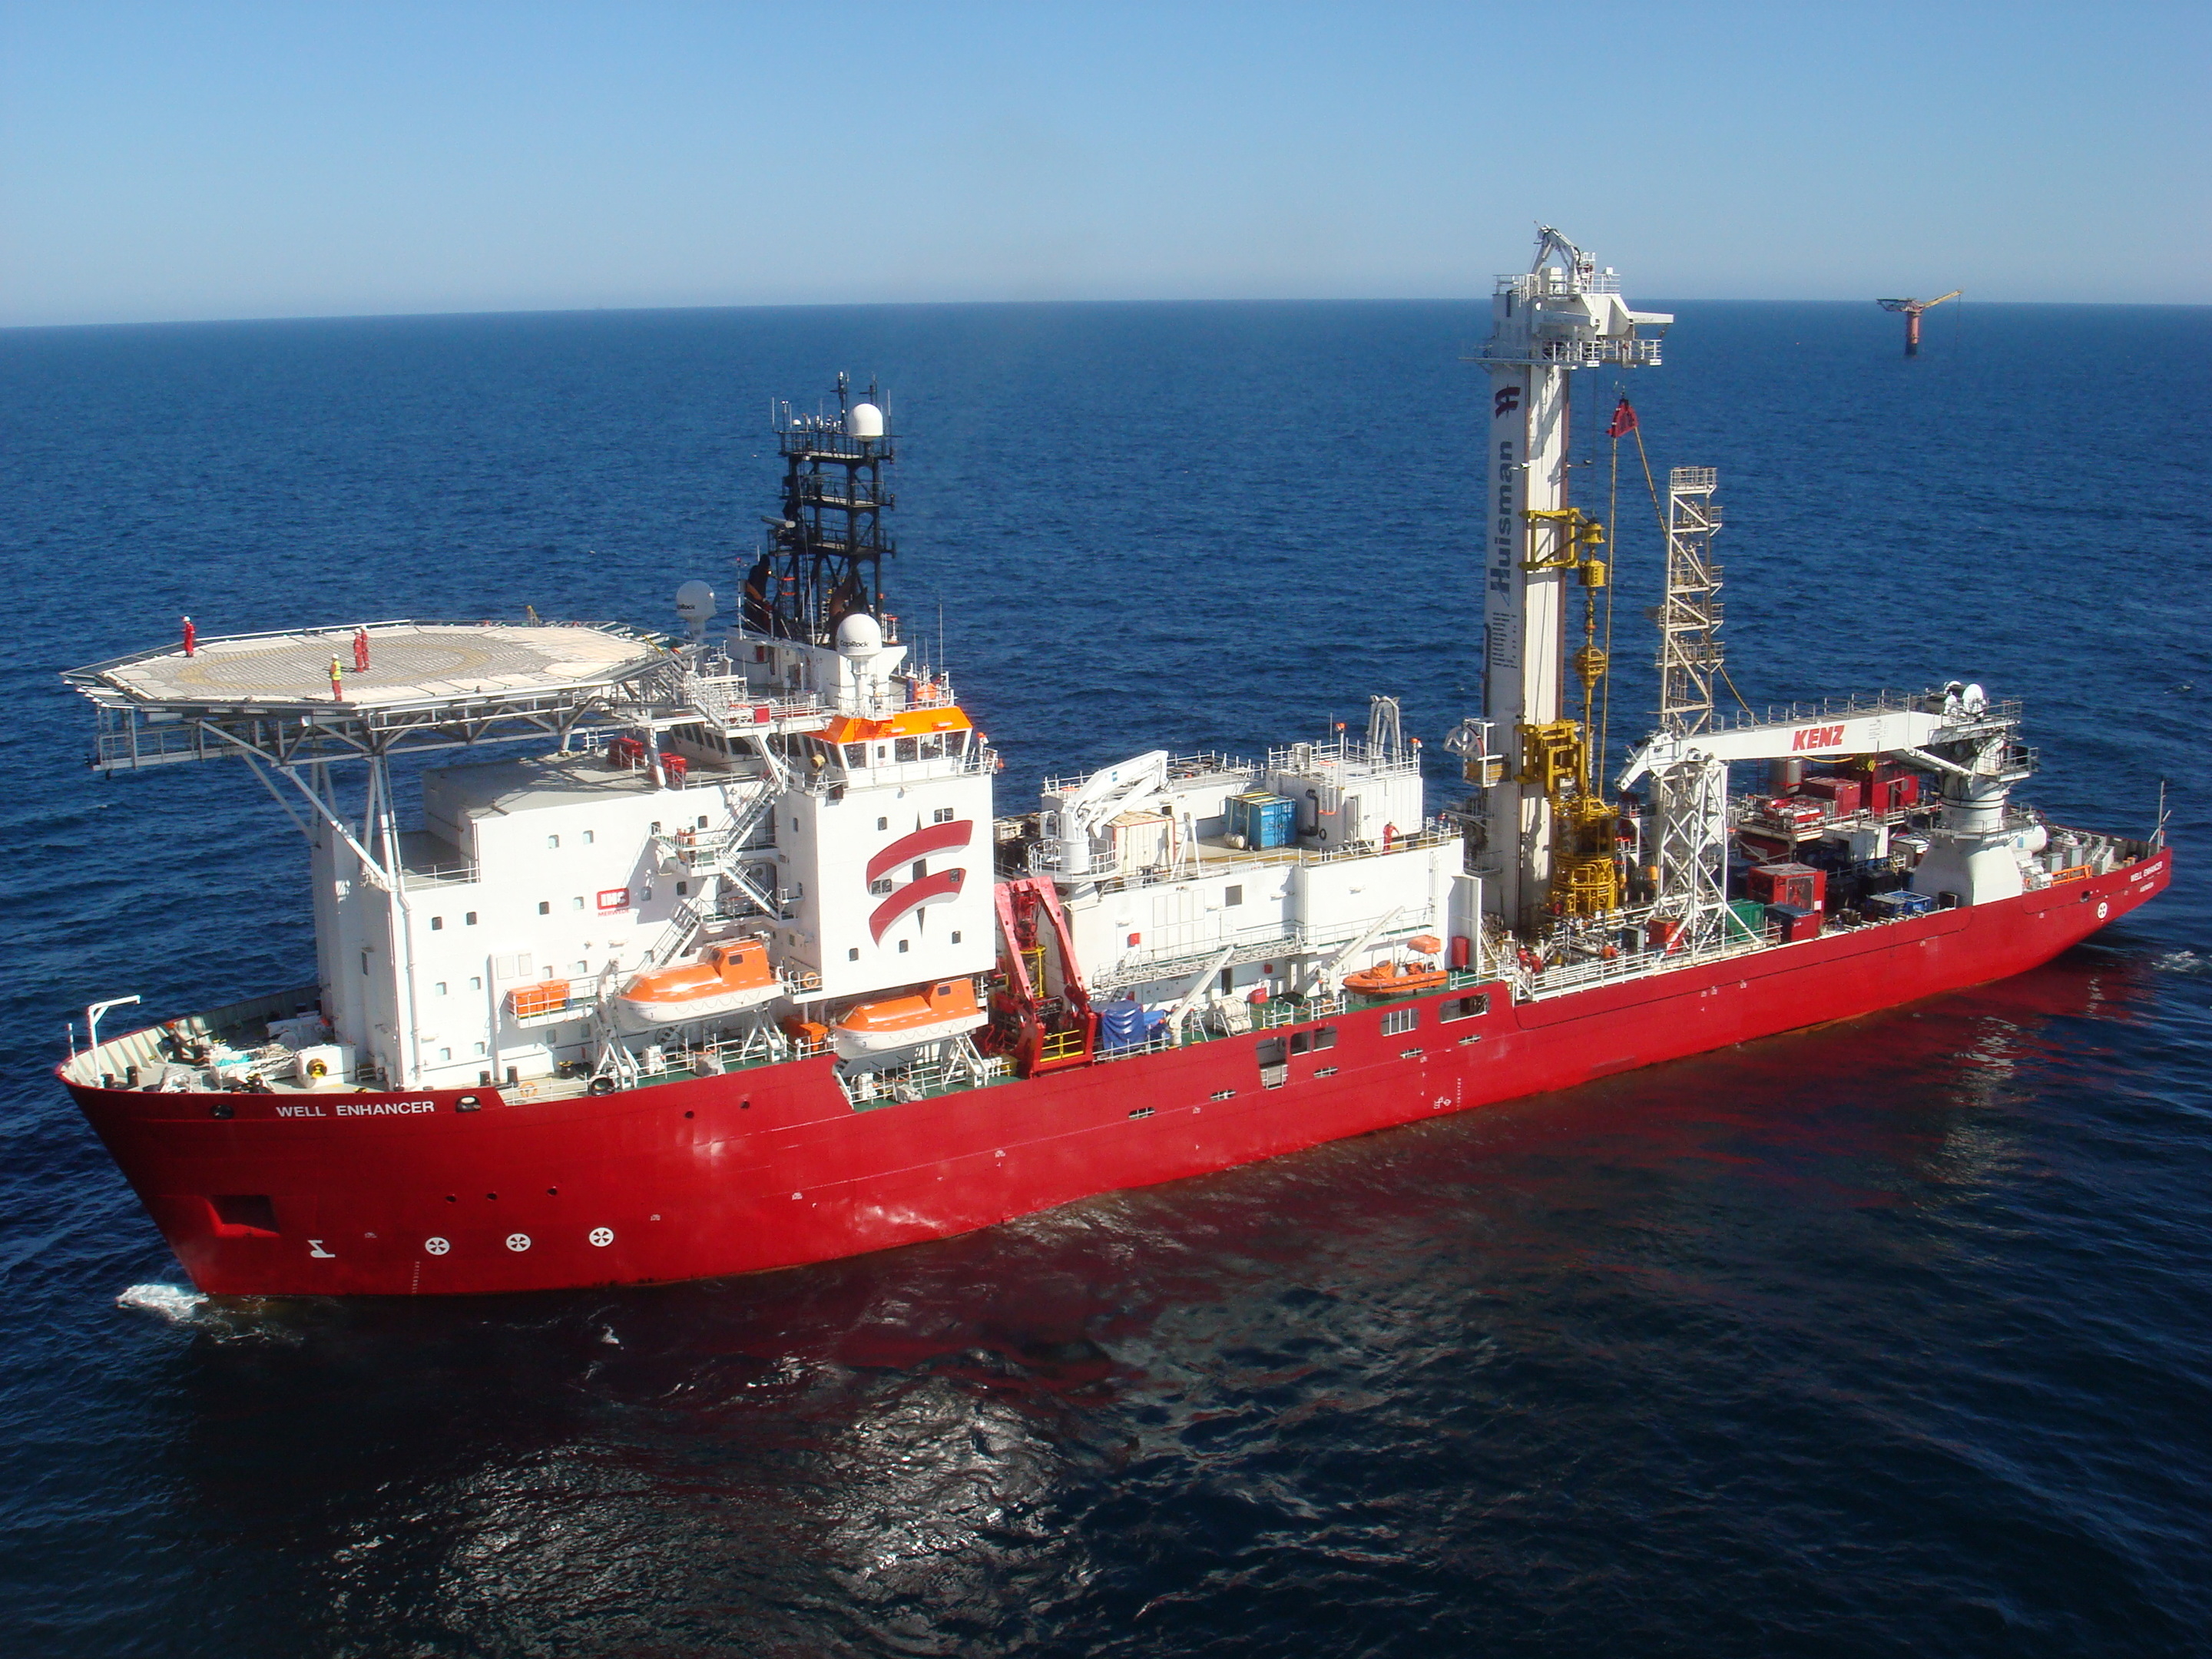 The Well Enhancer vessel at sea